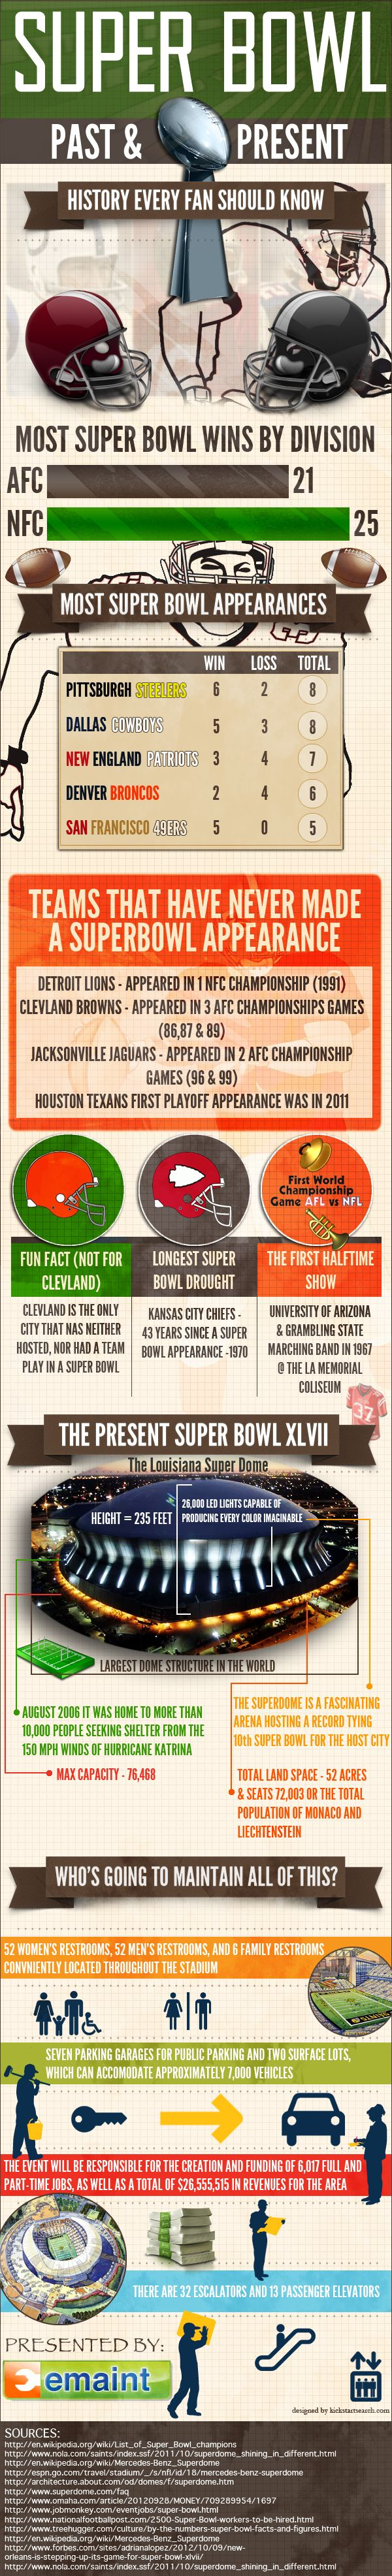 Infographic looking at the history of the super bowl. This is history that every football fan should know.